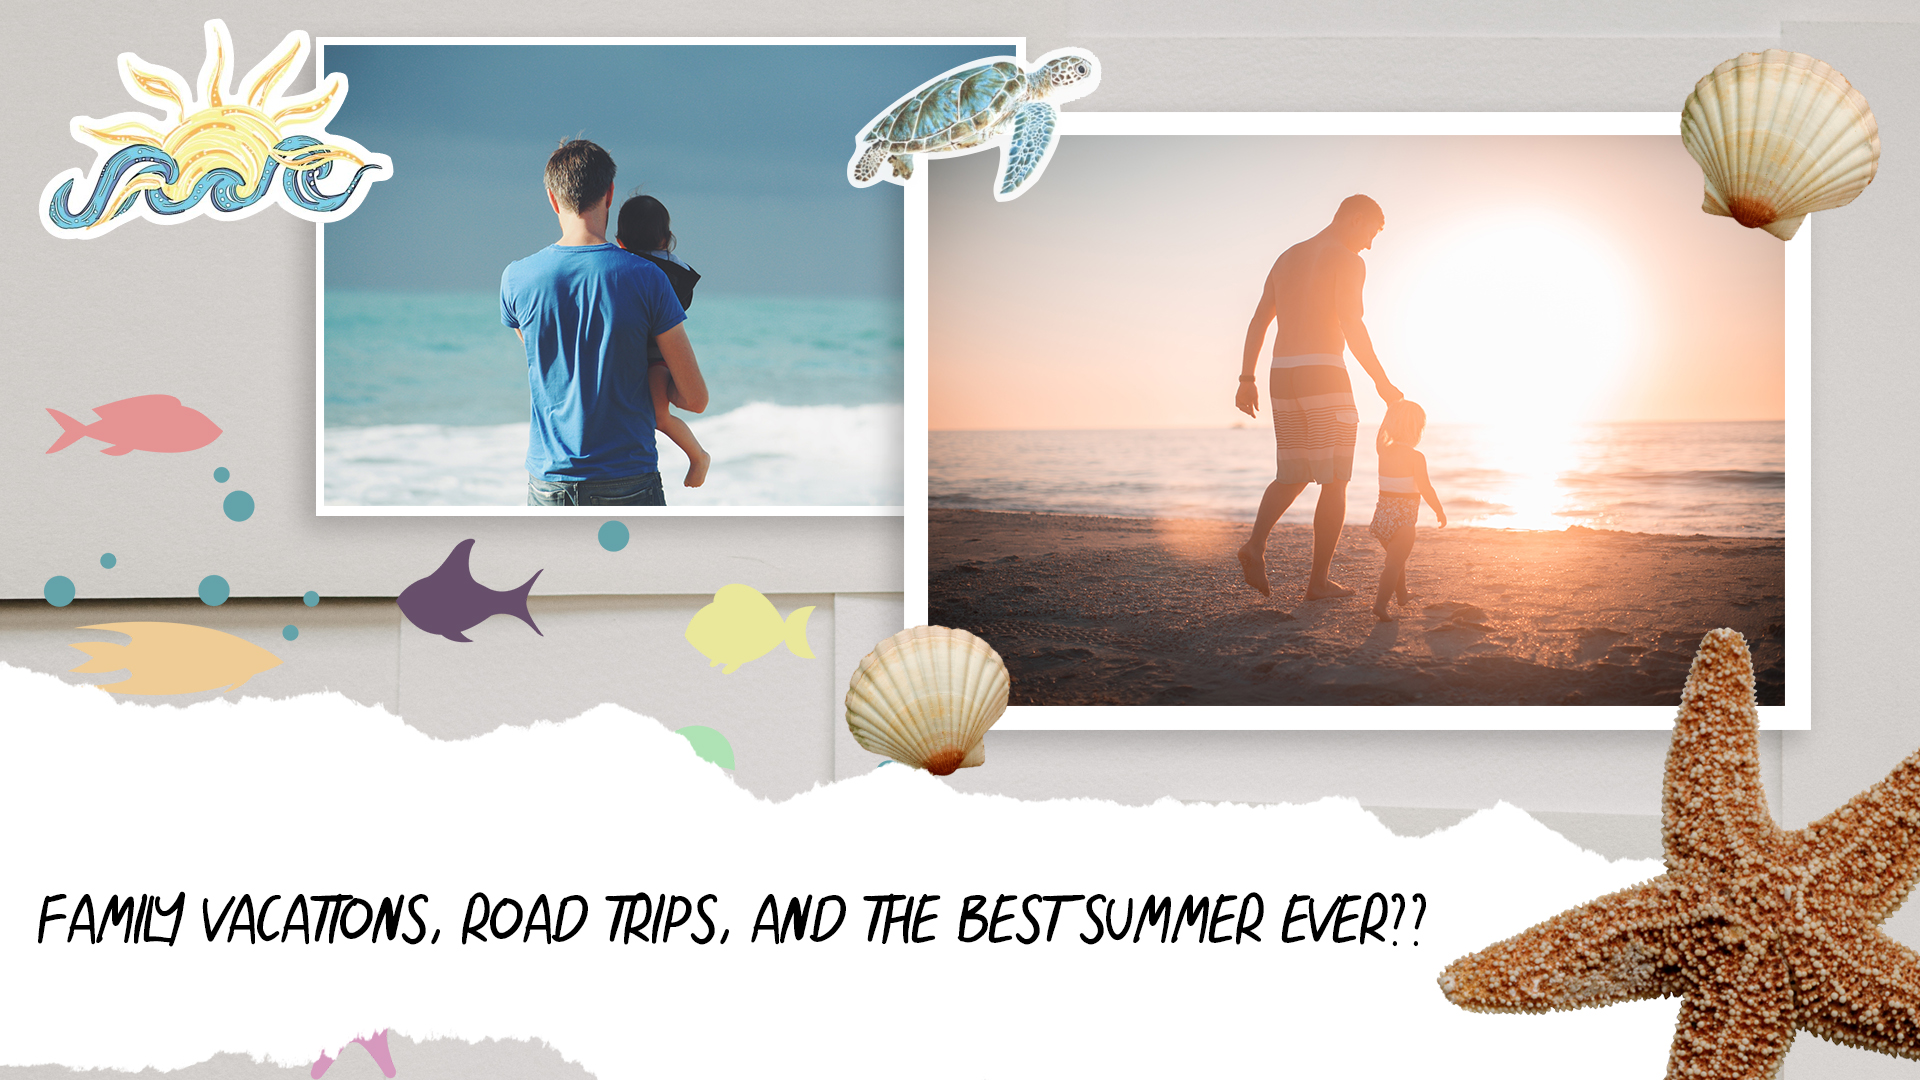 FAMILY VACATIONS, ROAD TRIPS, AND THE BEST SUMMER EVER??